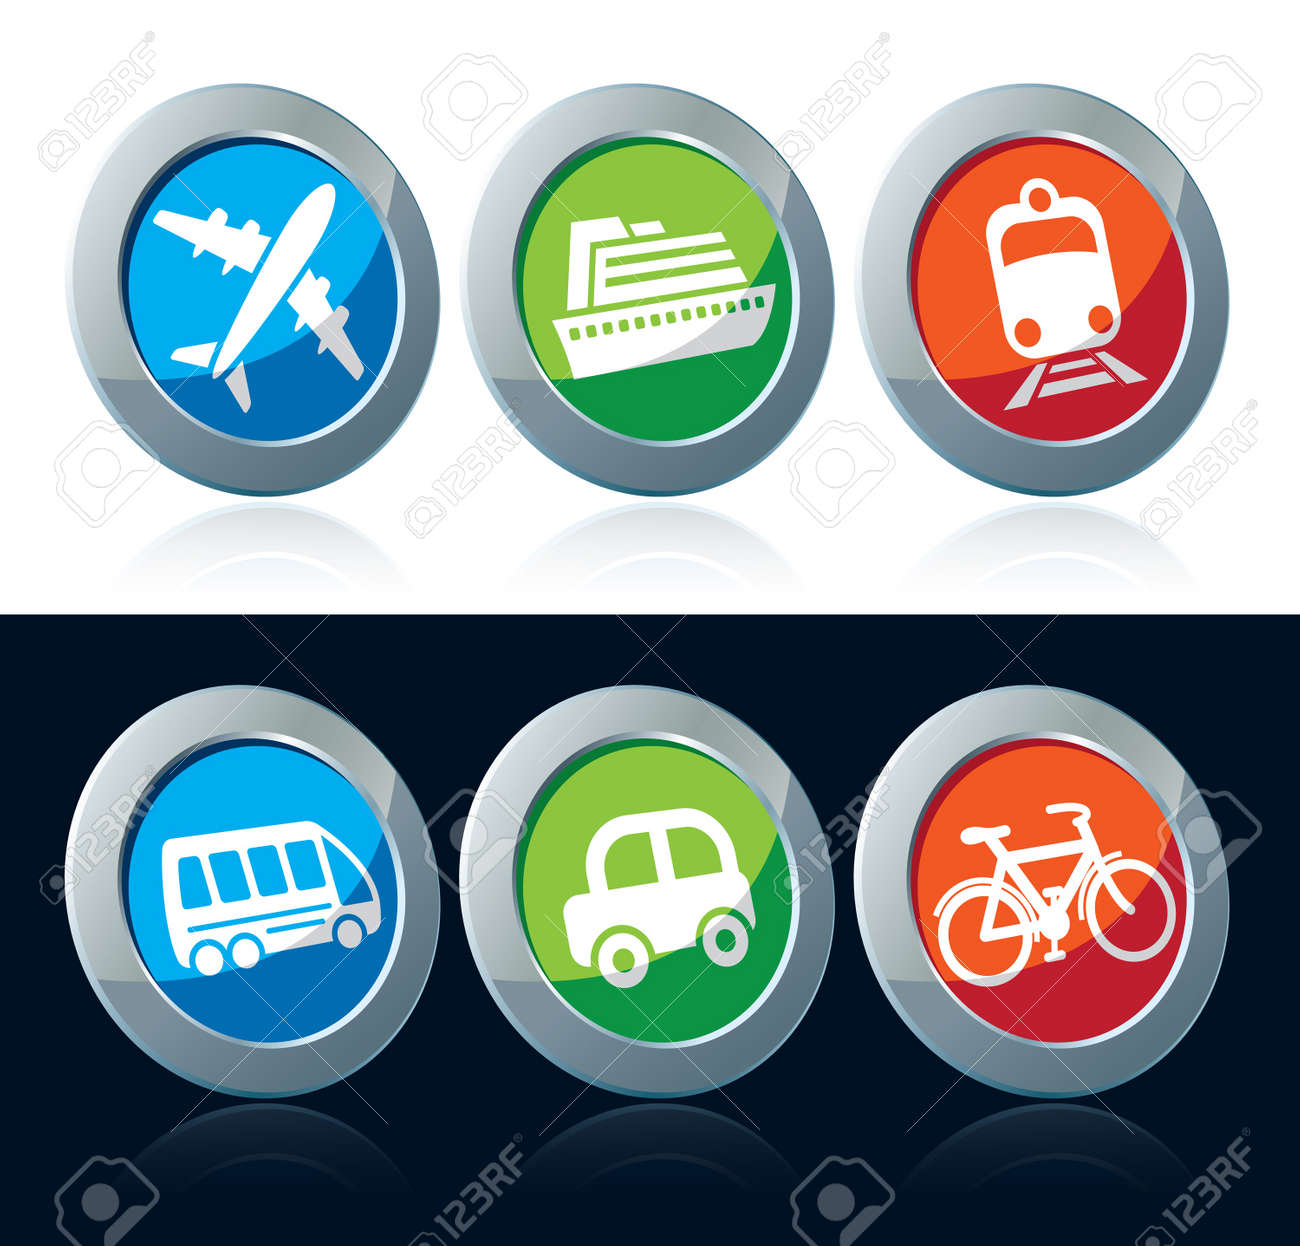 Travel icon set over white and black background Stock Vector - 16643471